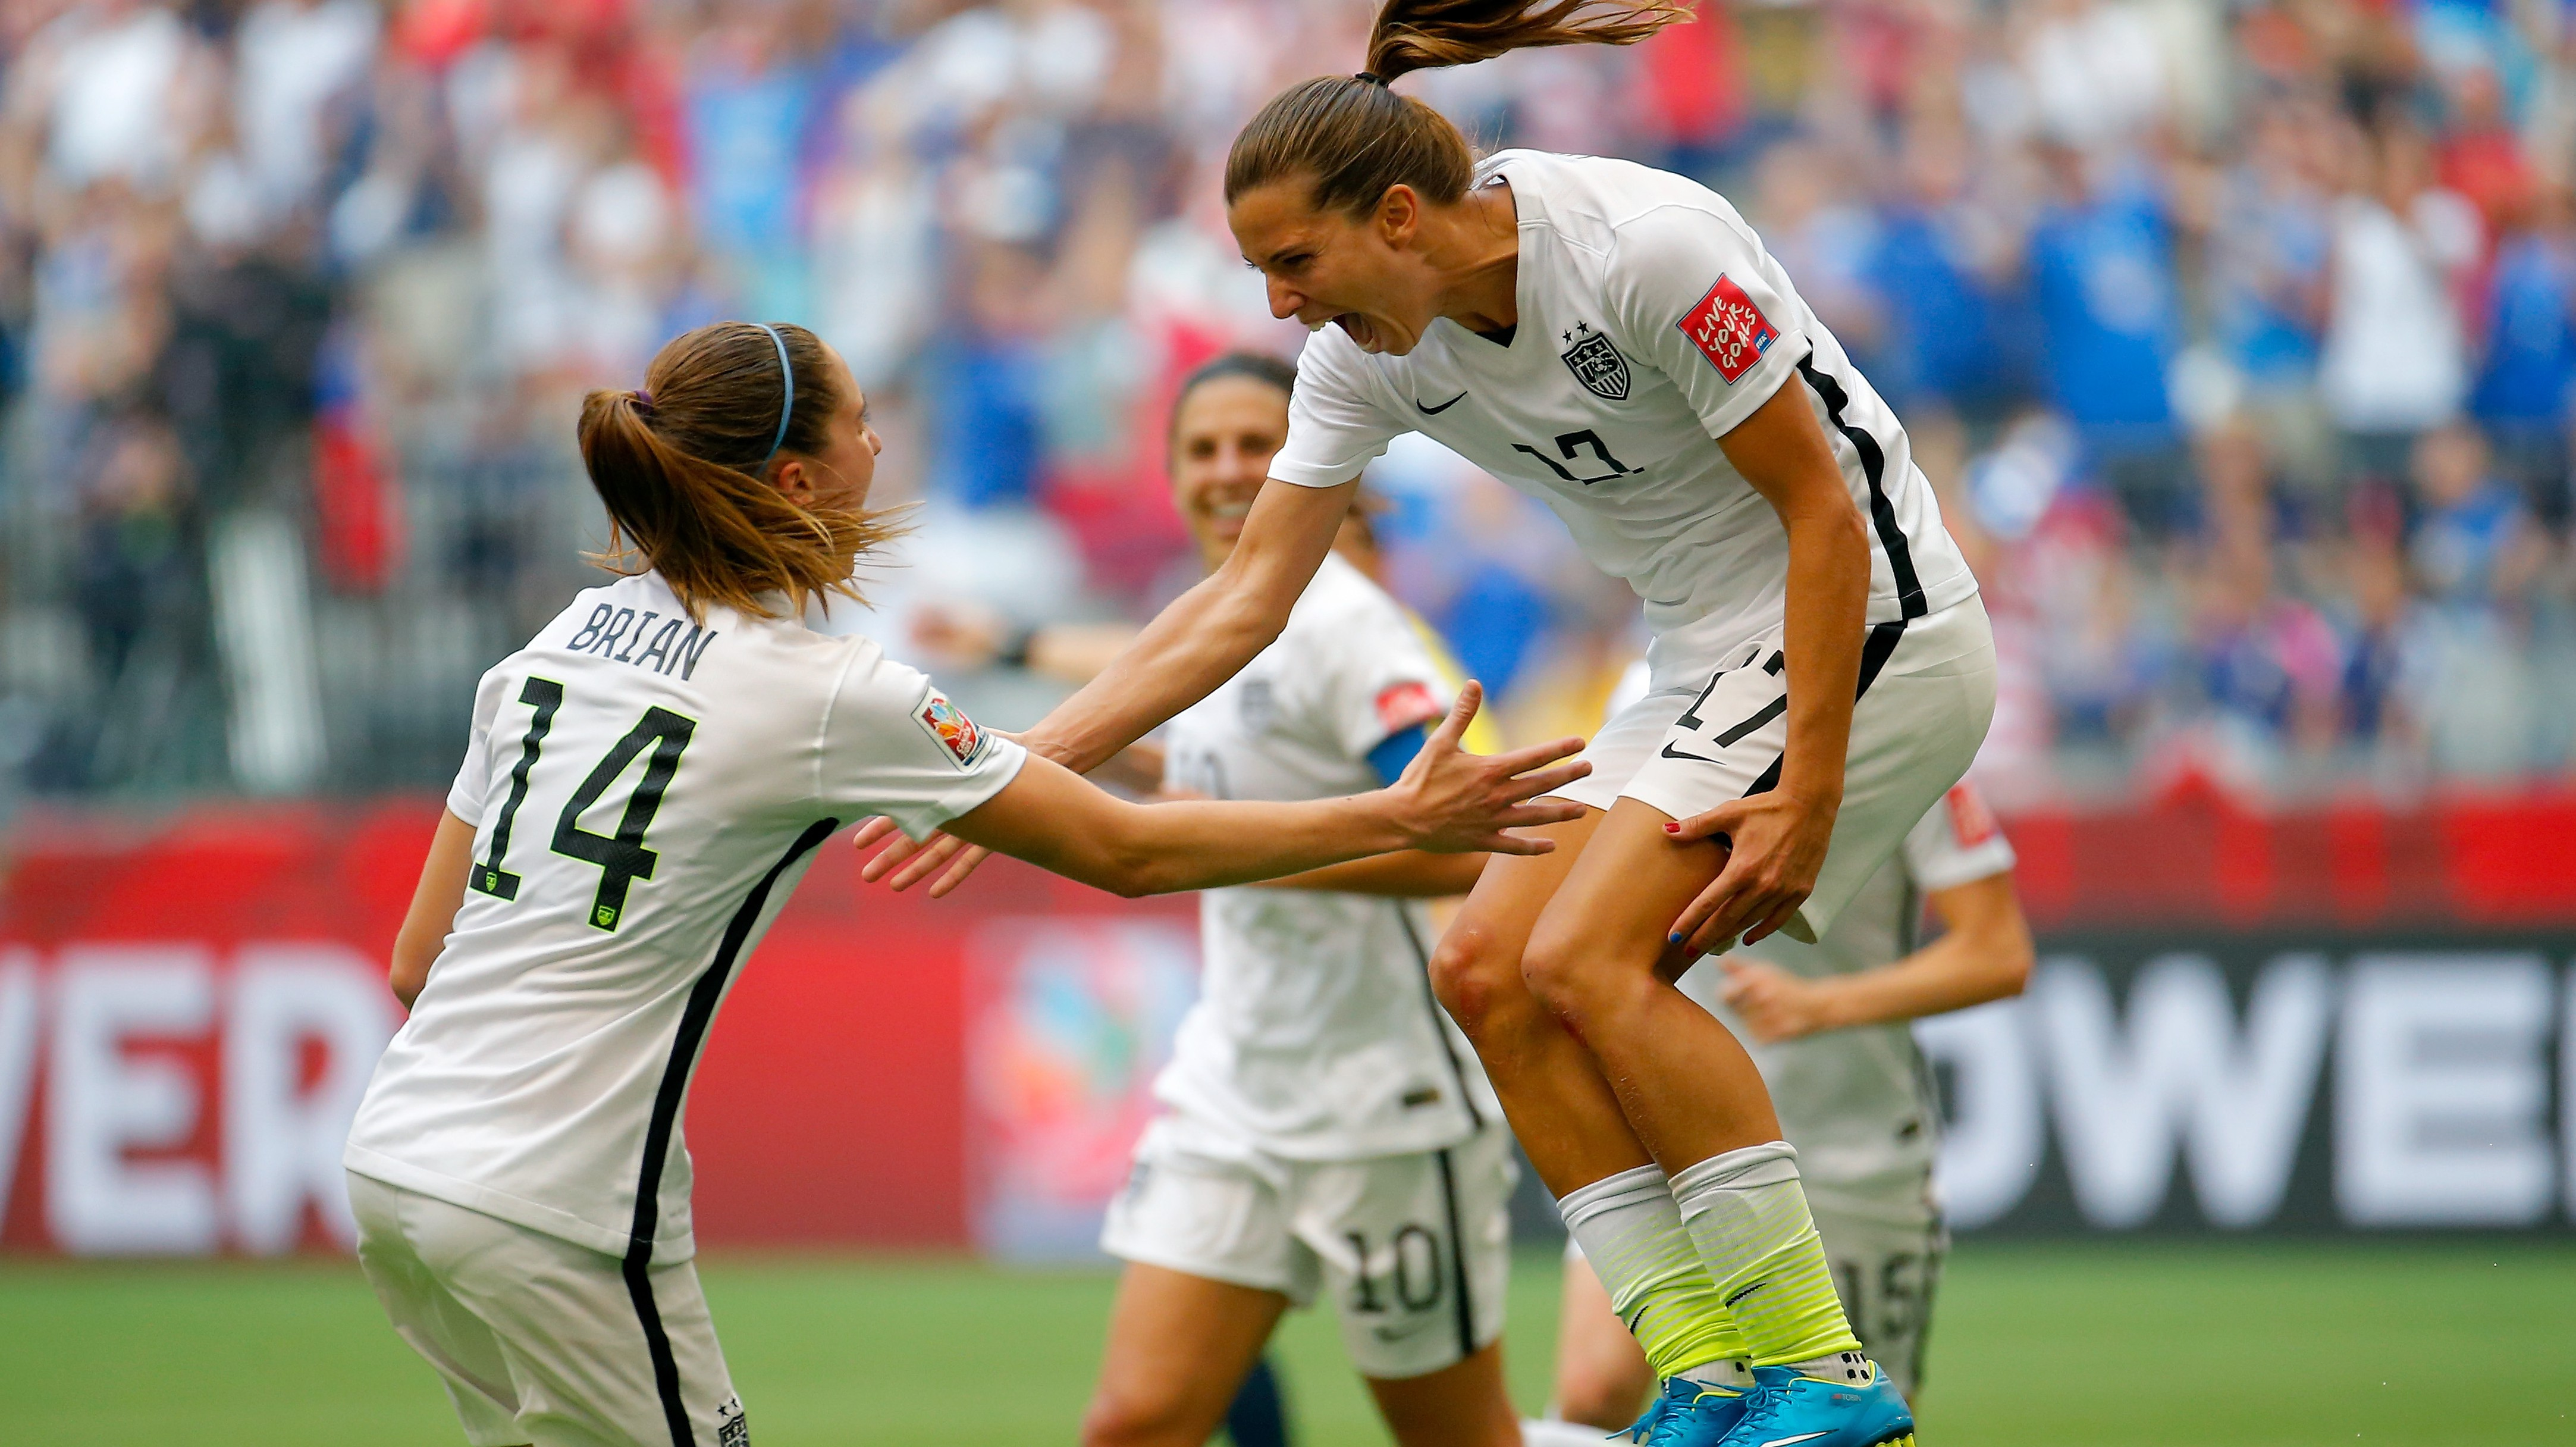 VANCOUVER, BC - JULY 05: Tobin Heath #17 of the United States celebrates with Morgan Brian #14 after Heath scores in the second half against Japan in the FIFA Women's World Cup Canada 2015 Final at BC Place Stadium on July 5, 2015 in Vancouver, Canada. (Photo by Kevin C. Cox/Getty Images)